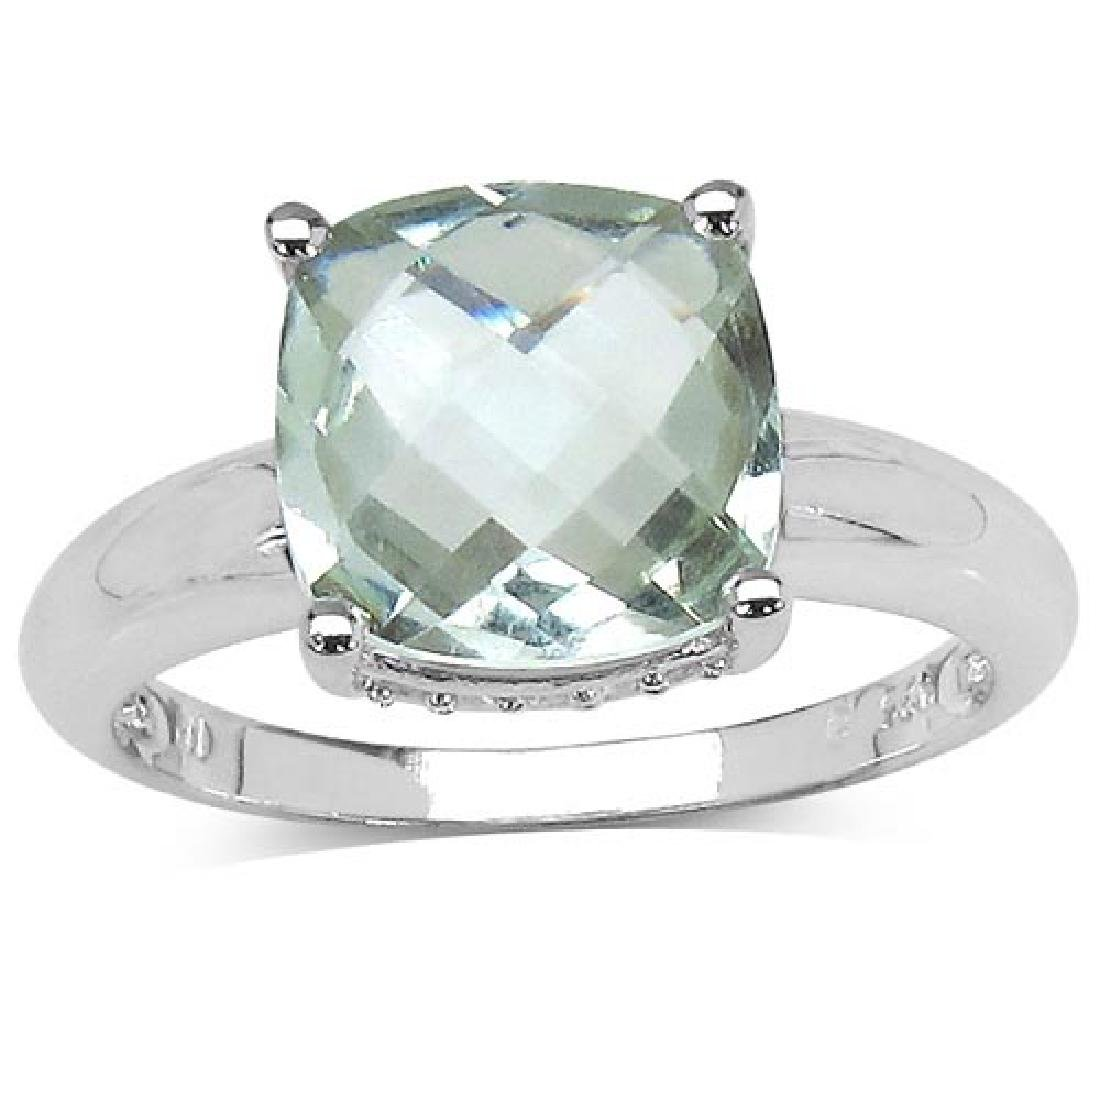 3.40 ct. t.w. Green Amethyst and White Topaz Ring in St